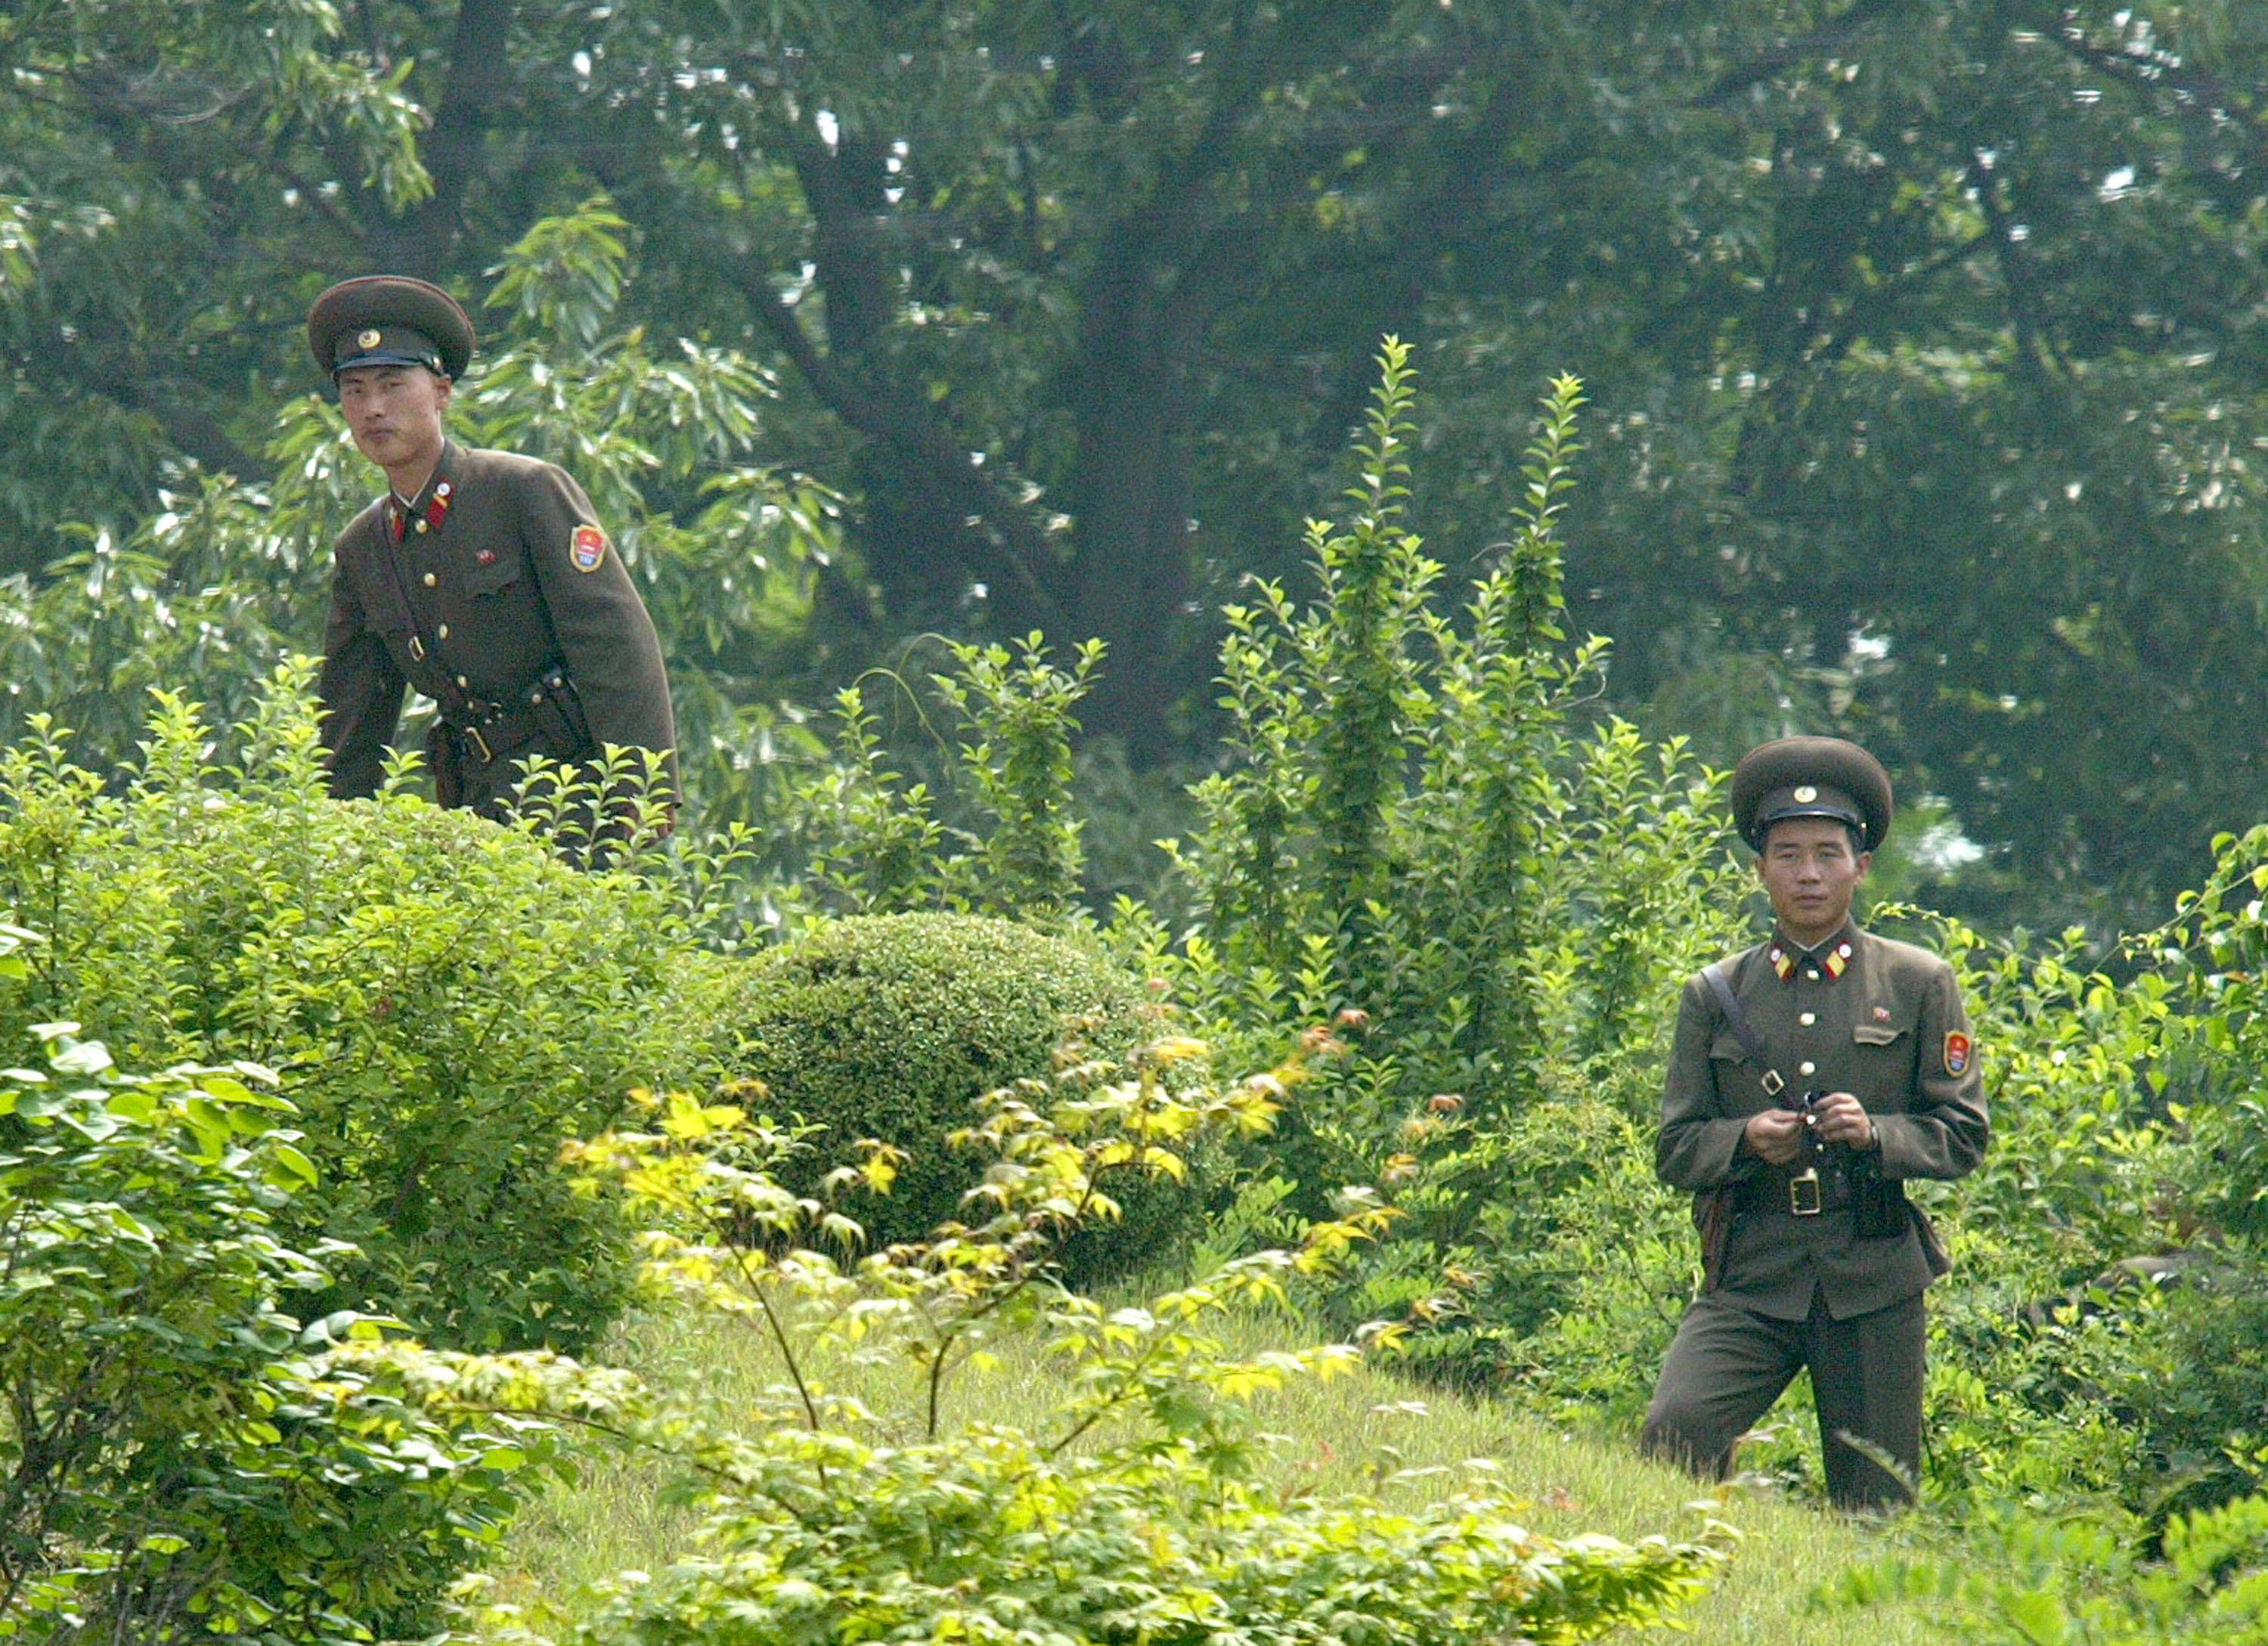 Report: Starving North Korean soldiers are now raiding civilian homes to find food